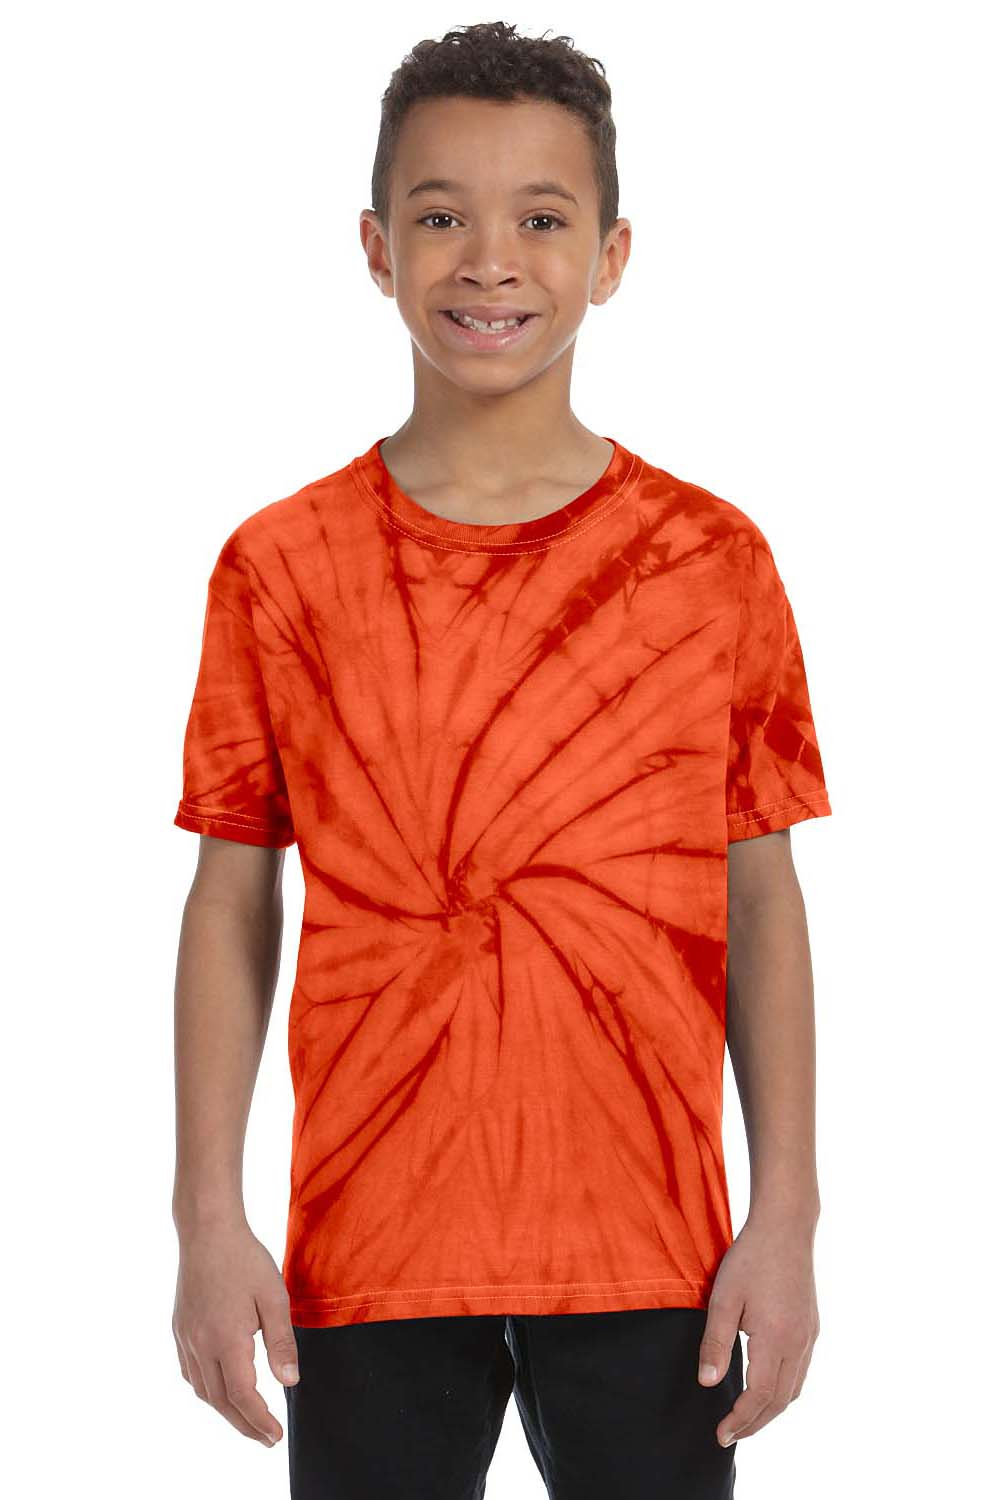 Tie-Dye CD101Y Youth Short Sleeve Crewneck T-Shirt Orange Front